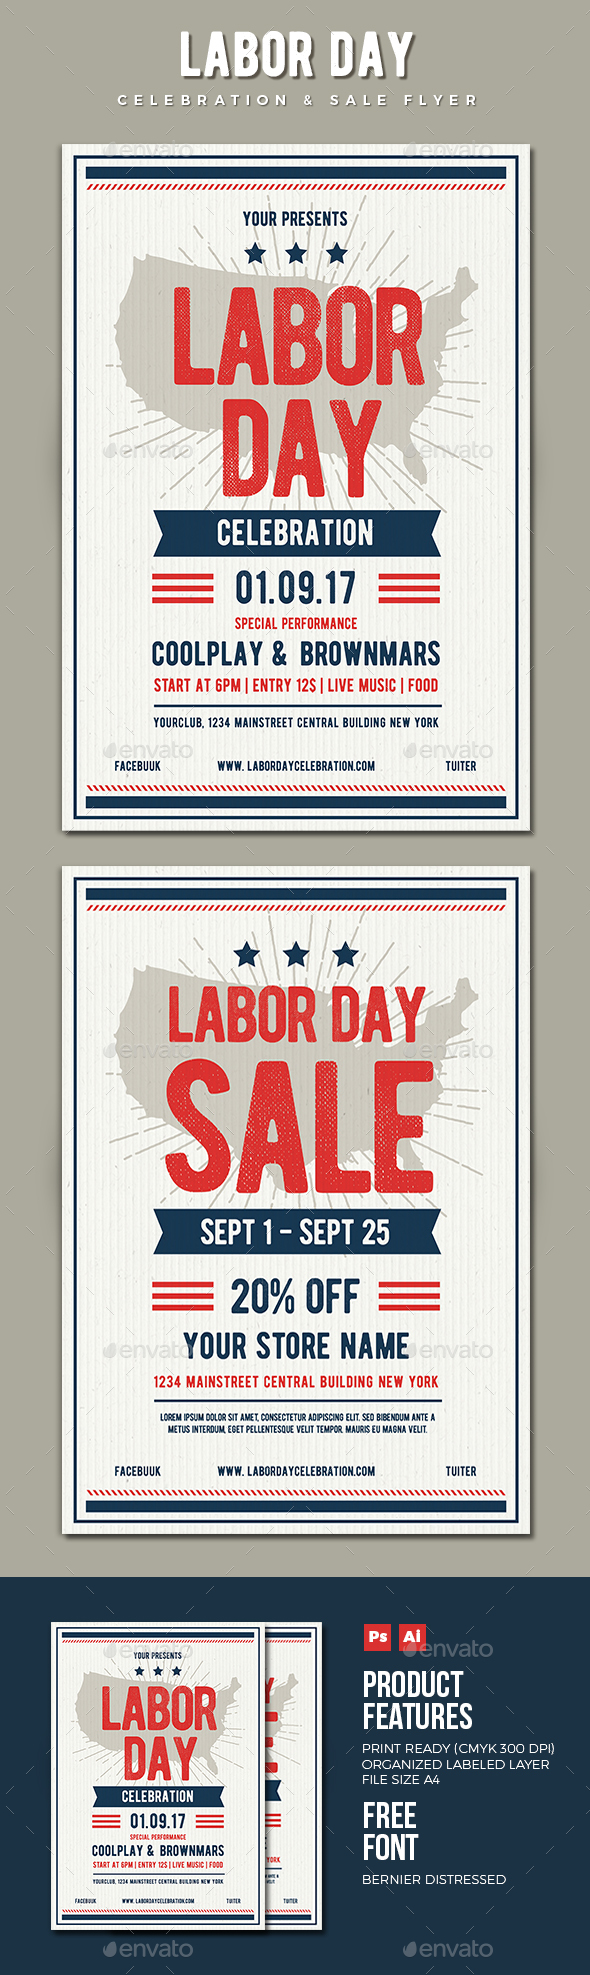 Labor Day Event Flyer Templates from GraphicRiver (Page 3)